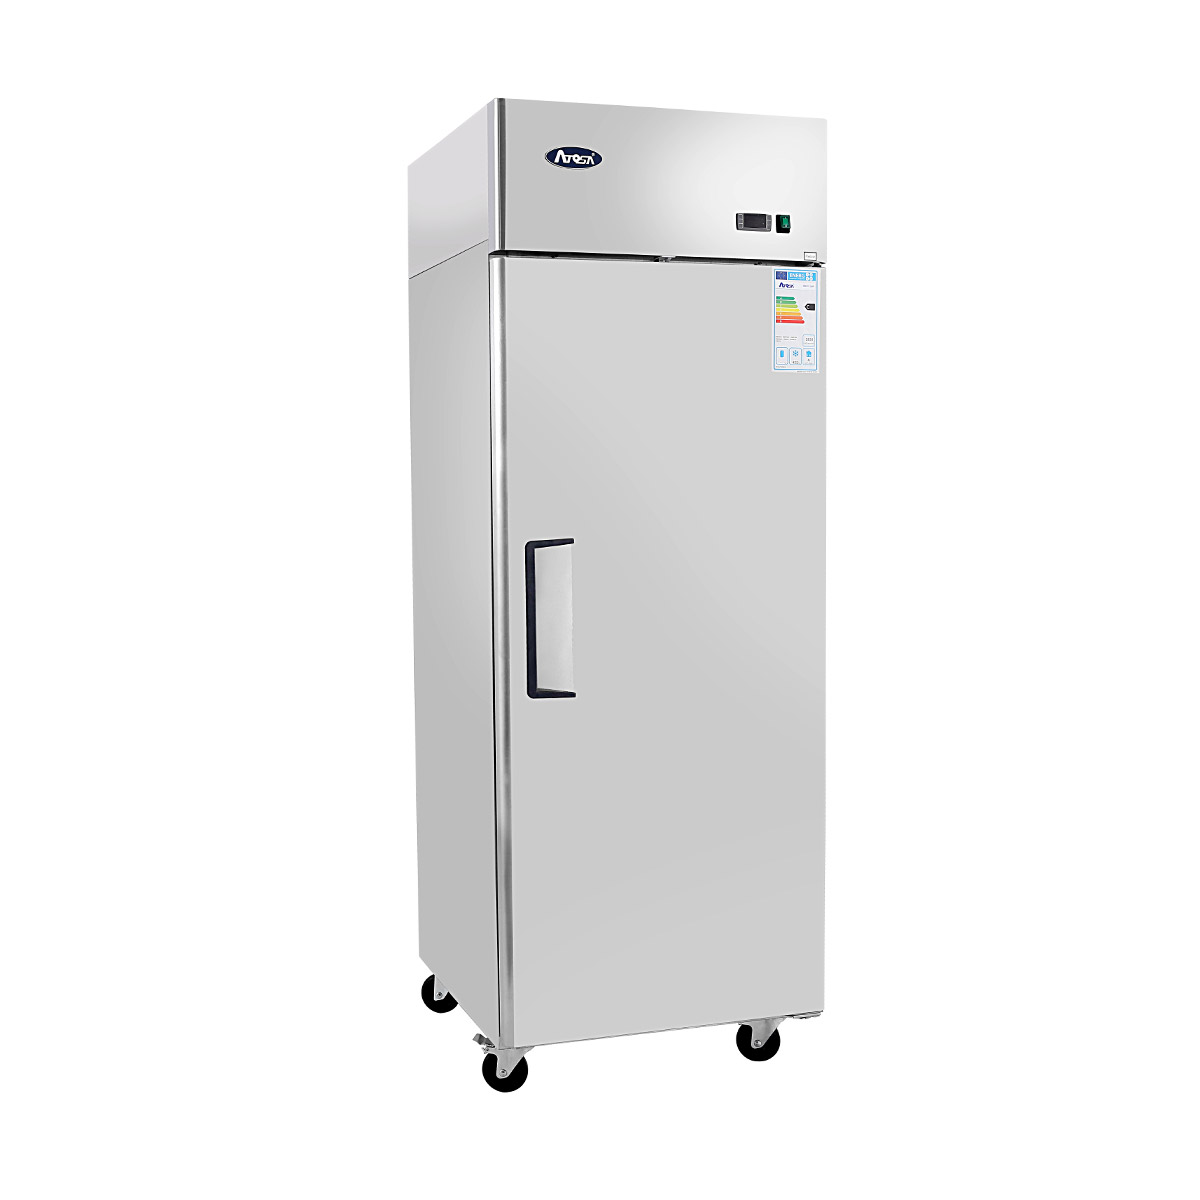 Atosa MBF8113HD Top Mounted Upright Single Door Freezer